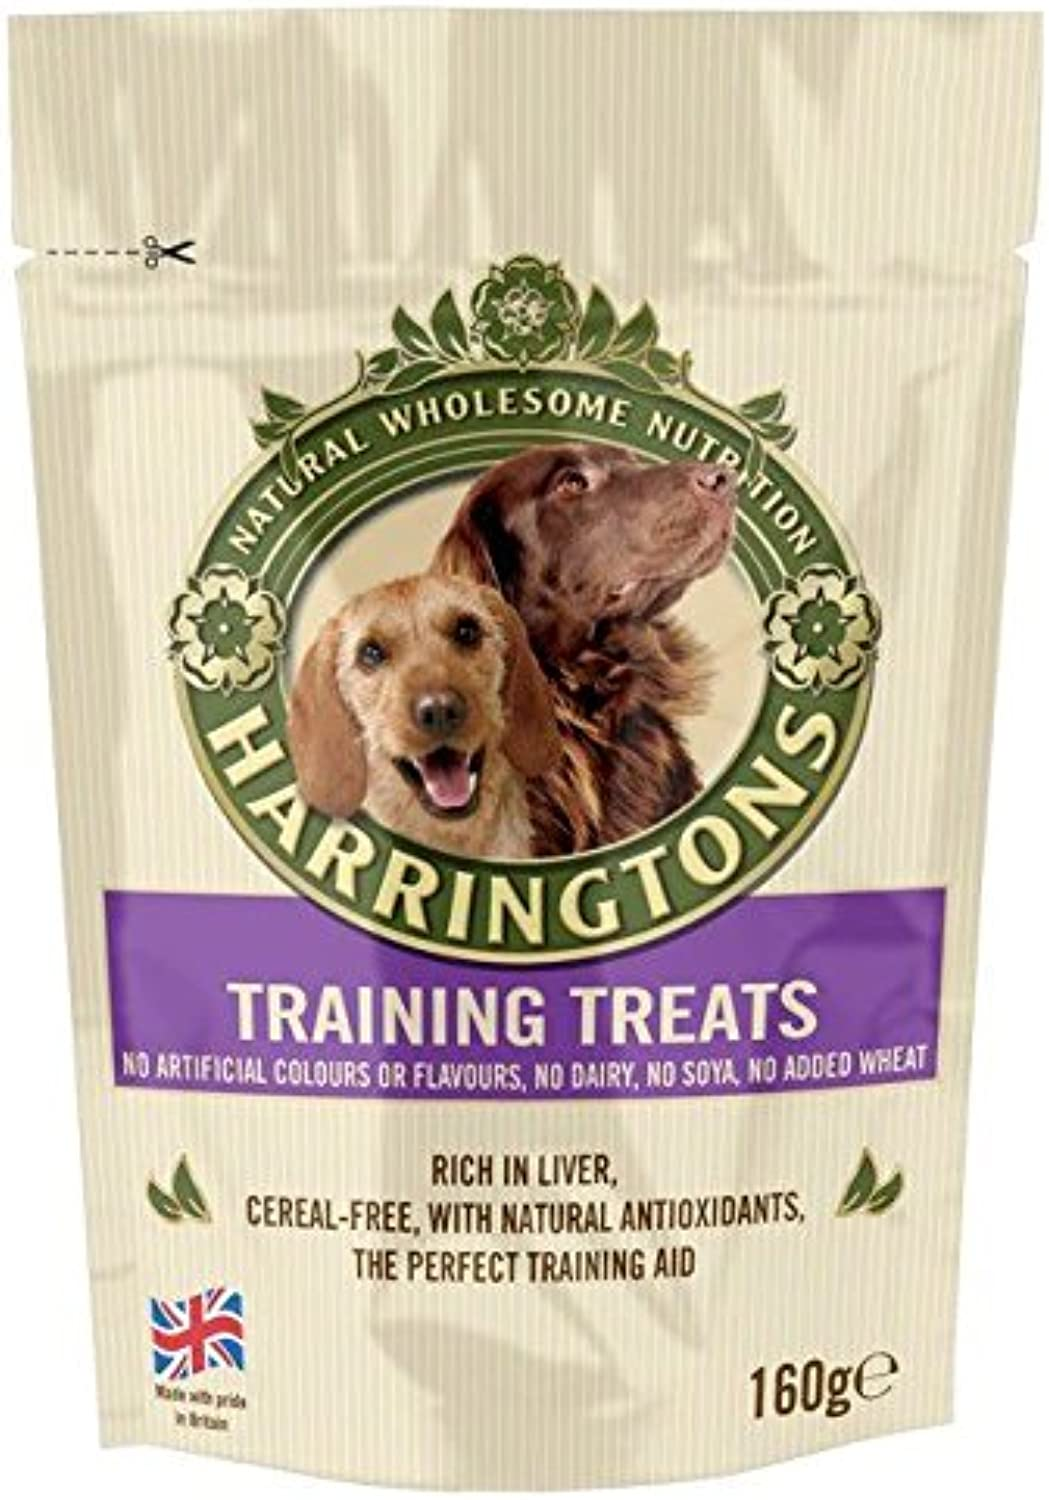 Harringtons Training Treats Rich in Liver 160g (PACK OF 4)